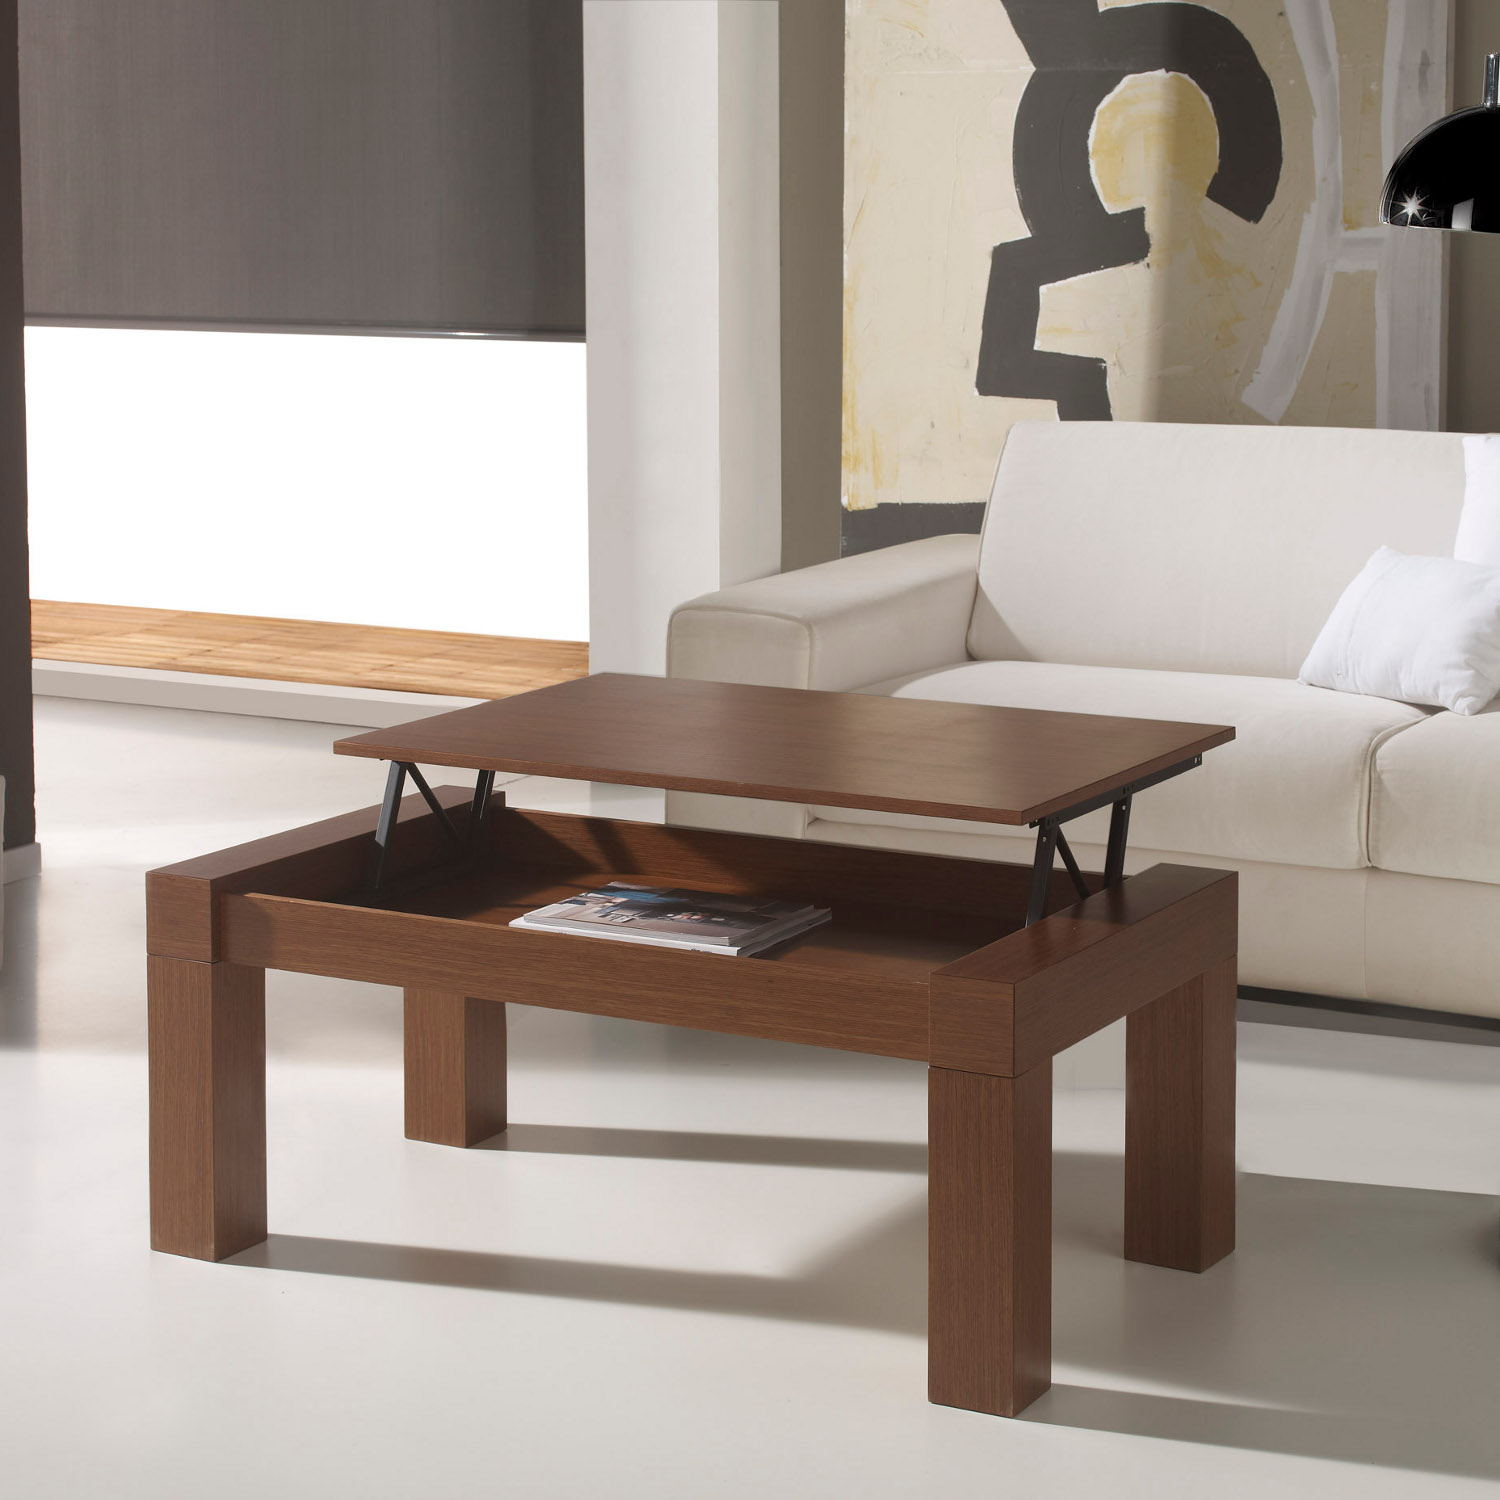 la table basse relevable r volutionne le salon d co et saveurs. Black Bedroom Furniture Sets. Home Design Ideas